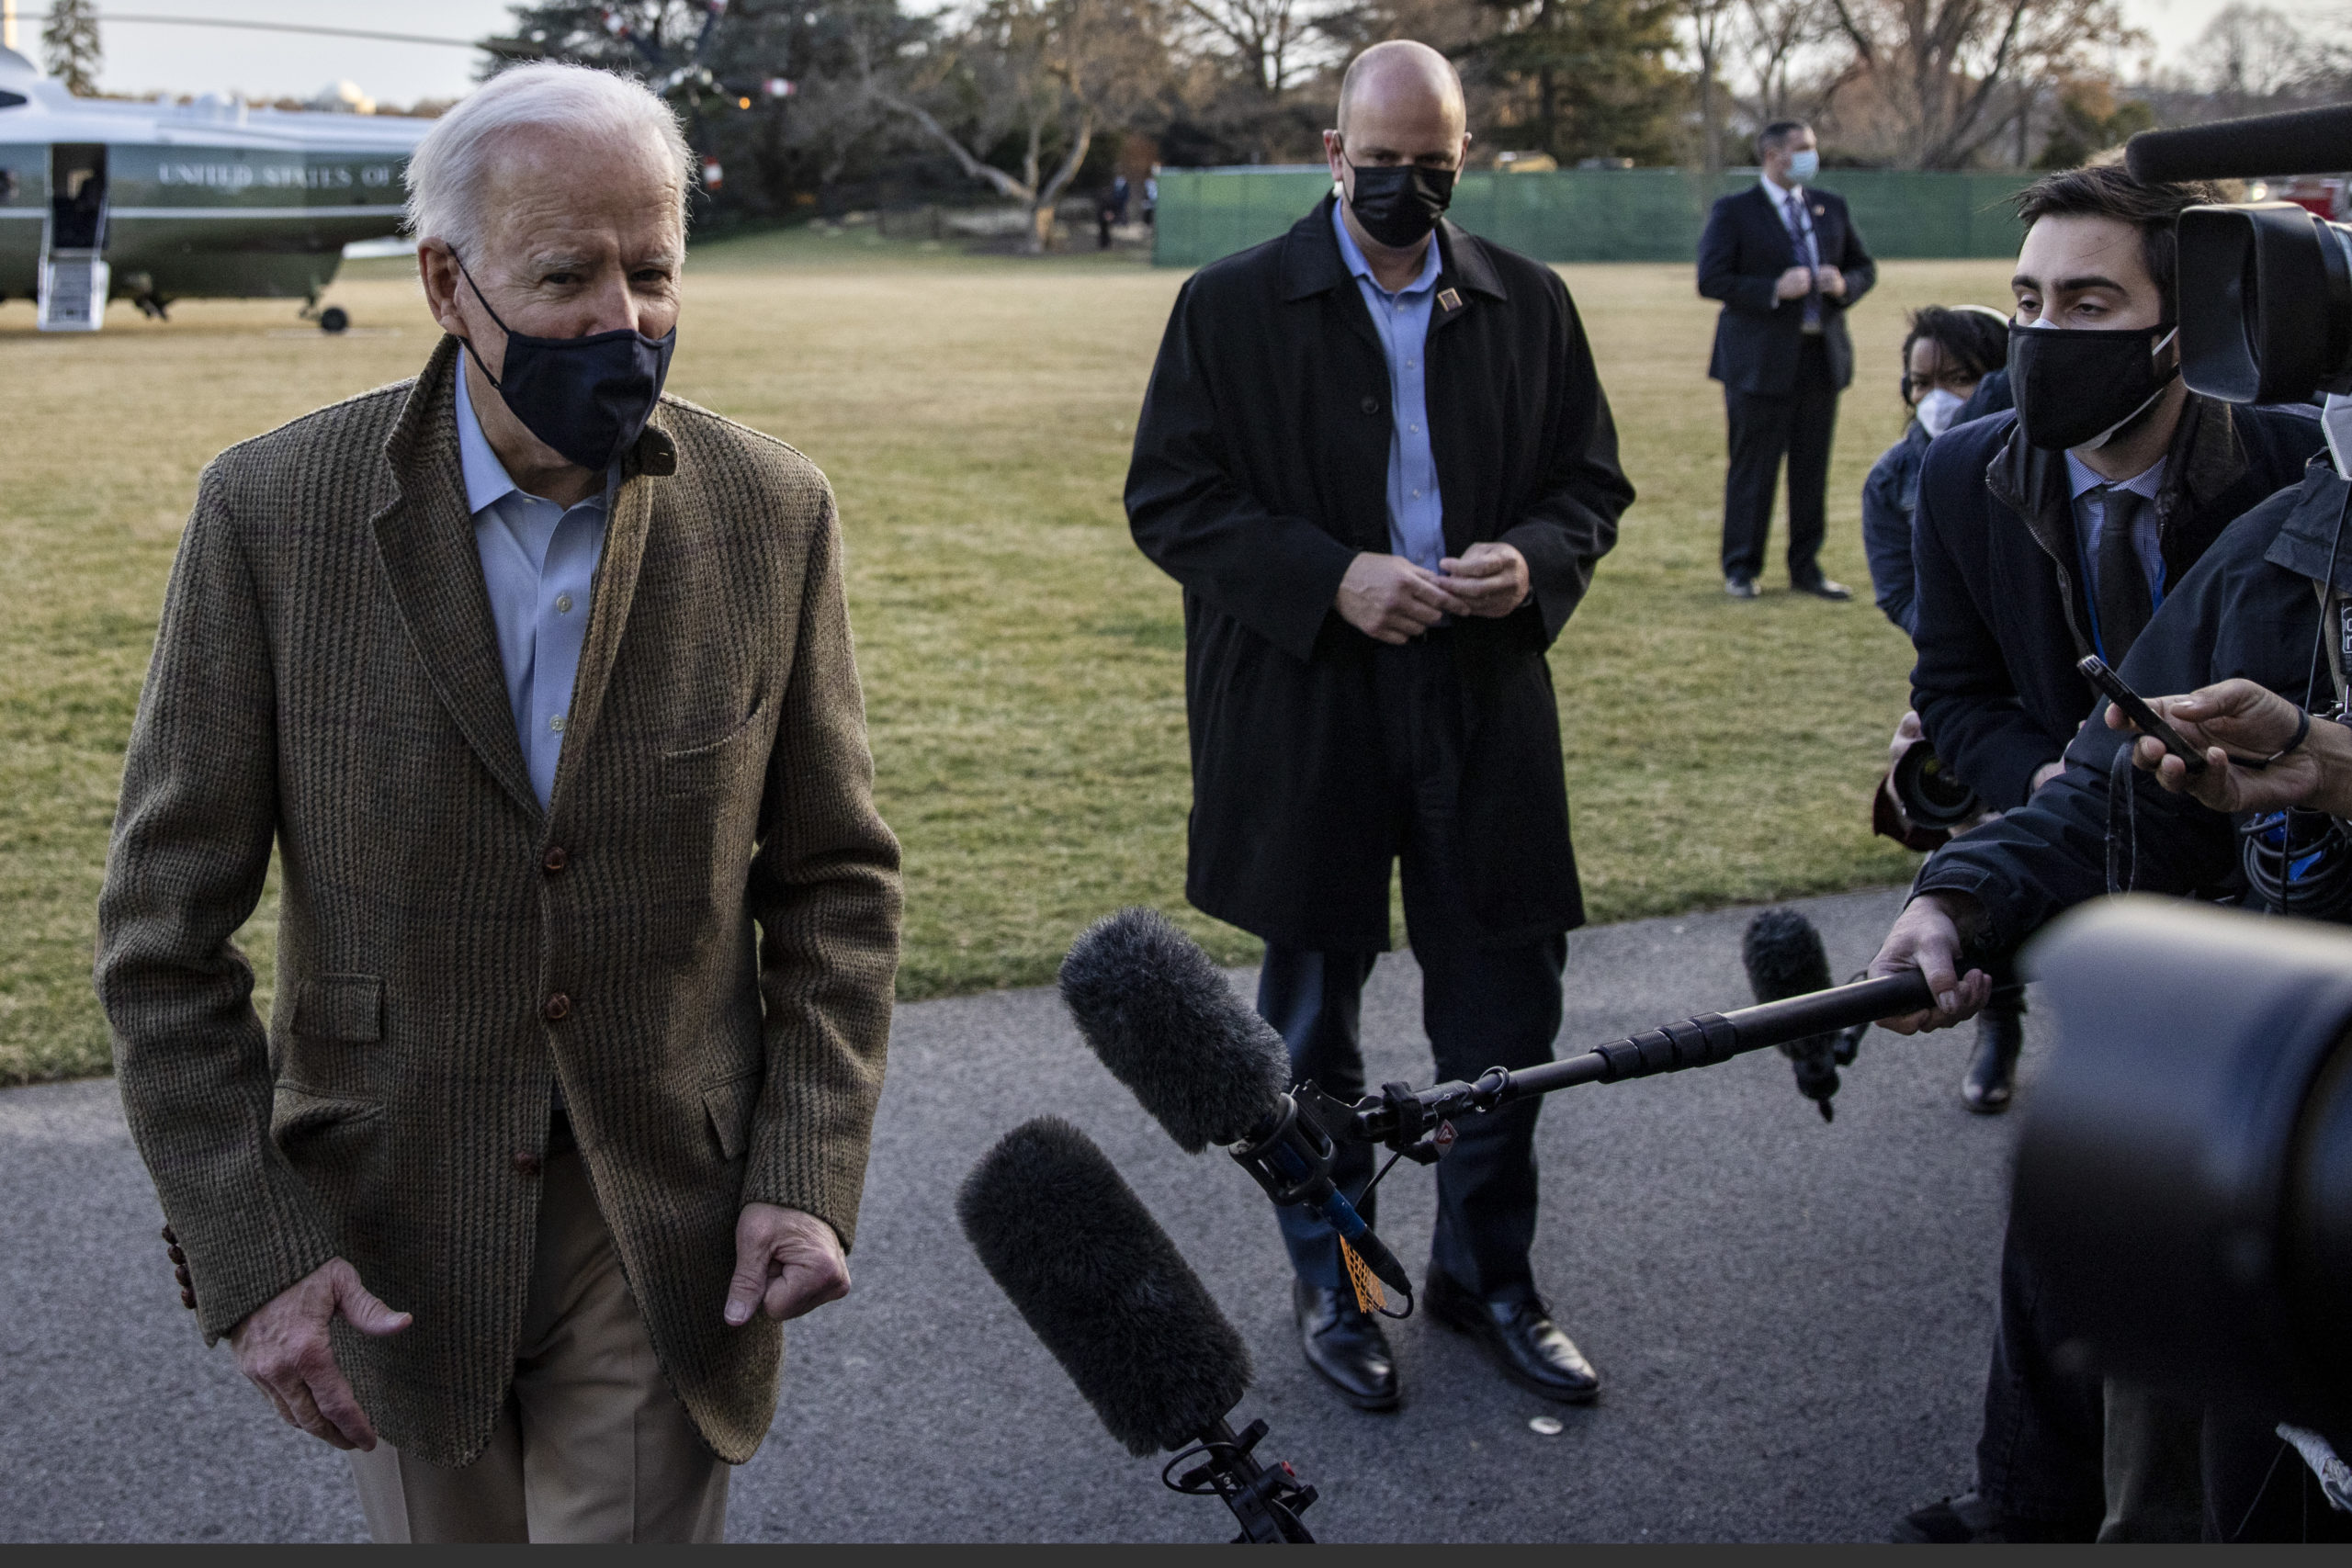 WASHINGTON, DC - MARCH 14: U.S. President Joe Biden stops to talk to the media after stepping off Marine One on the South Lawn of the White House on March 14, 2021 in Washington, DC. President Biden and First Lady Dr. Jill Biden were traveling from Wilmington, Delaware, where they spent the weekend with family and friends. (Photo by Tasos Katopodis/Getty Images)